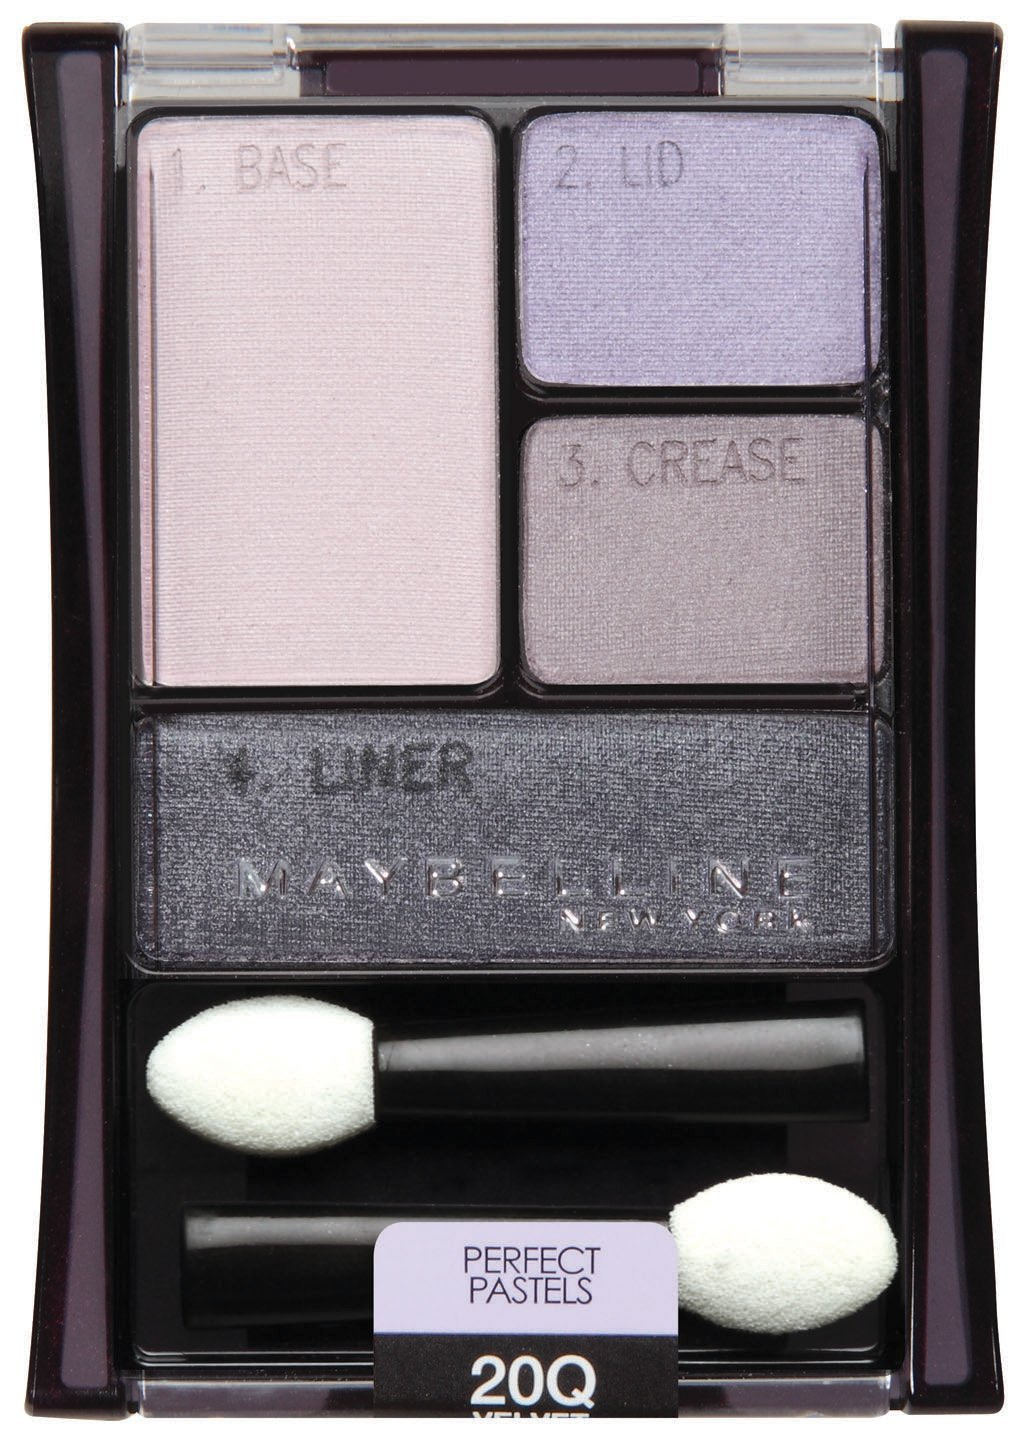 Primary image for Maybelline New York Expert Wear Eyeshadow Quads, 20q Velvet Crush Perfect Pas...